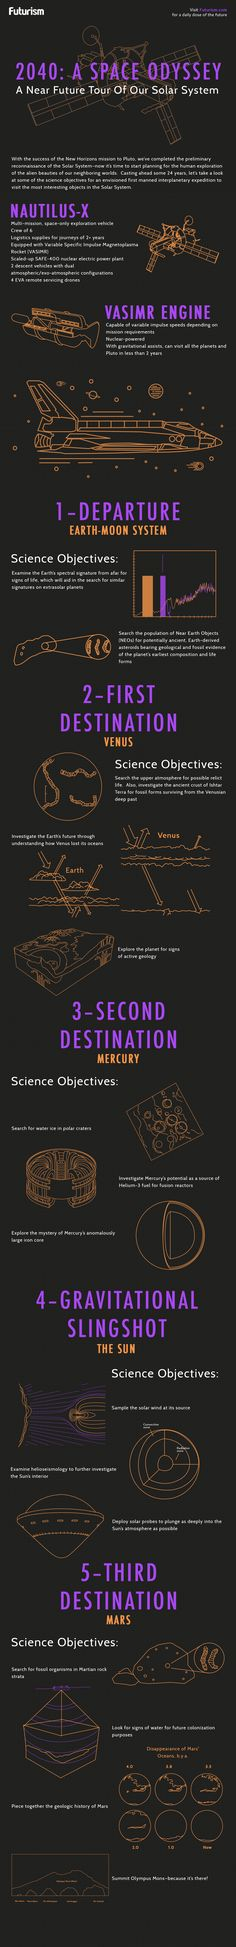 What would a manned mission across the solar system look like? Take a trip to 2040 with us and find out!    http://futurism.com/images/2040-a-space-odyssey-infographic/?utm_campaign=coschedule&utm_source=pinterest&utm_medium=Futurism&utm_content=2040%3A%20A%20Space%20Odyssey%20%5BInfographic%5D